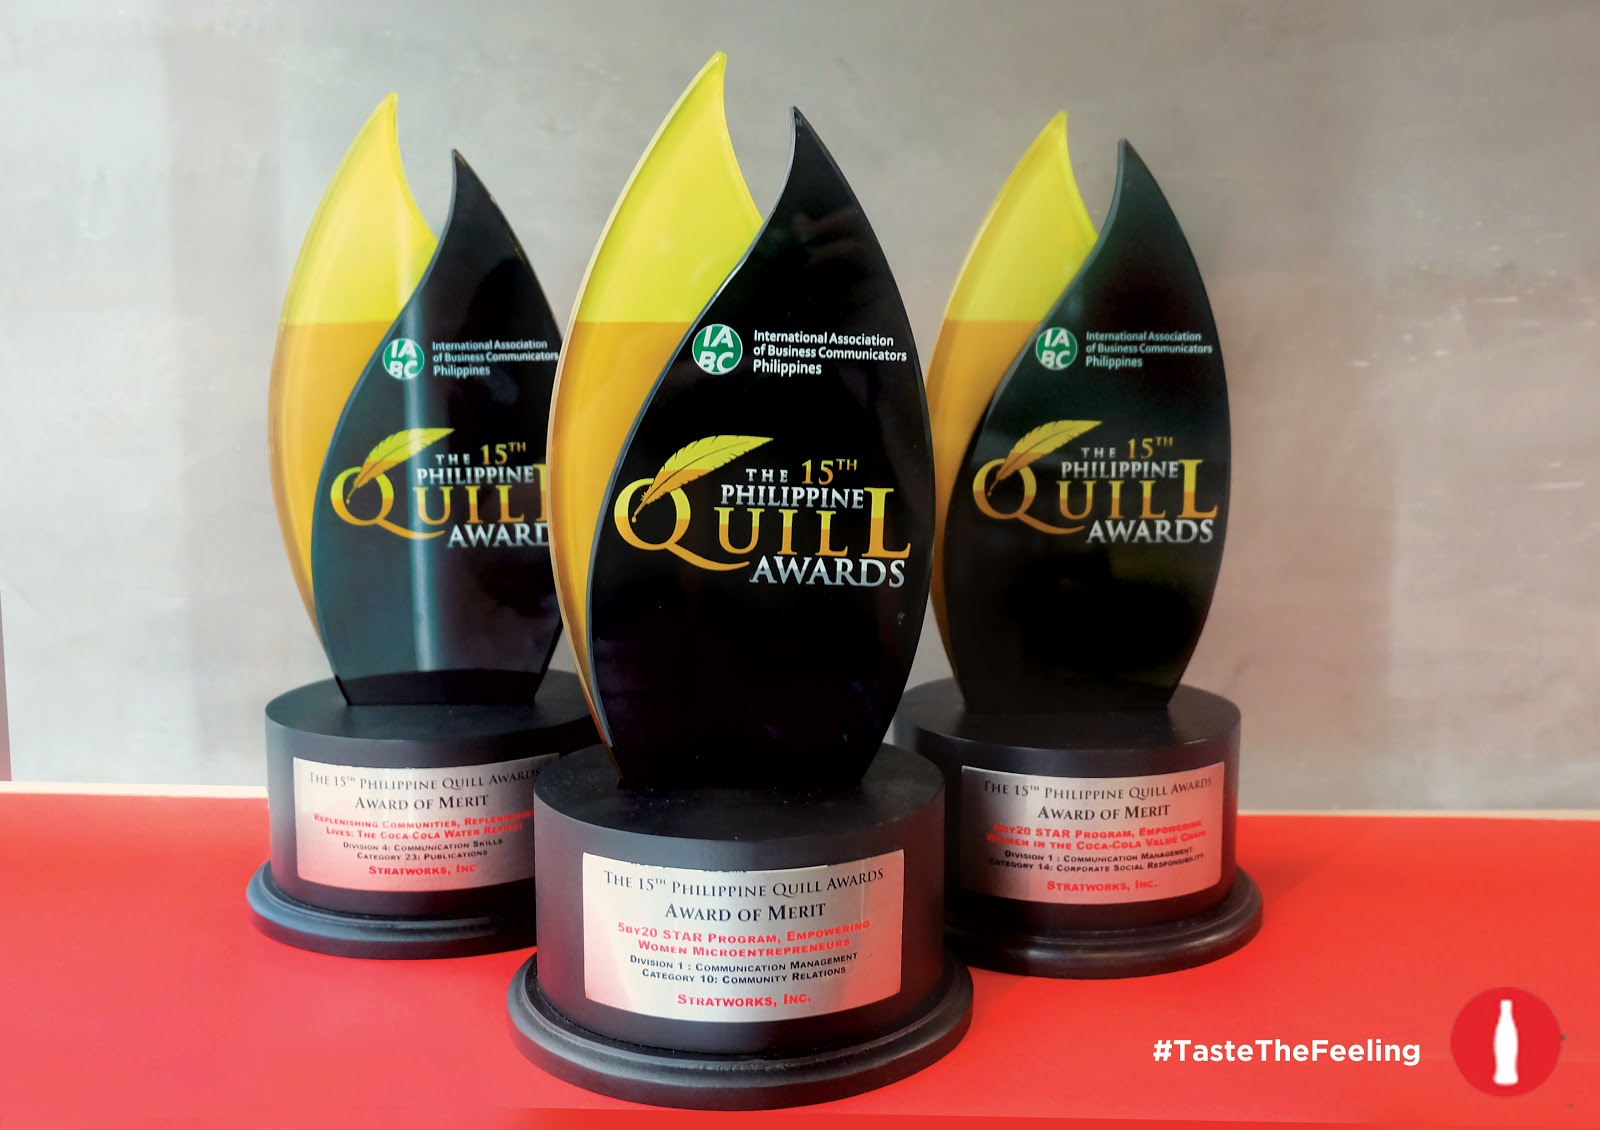 FTW! Blog - 15th Philippine Quill Awards, #FTWBlog, #PhilippineQuillAwards, #Tastethefeeling #Cocacola #zhequiaDOTcom, www.zhequia.com